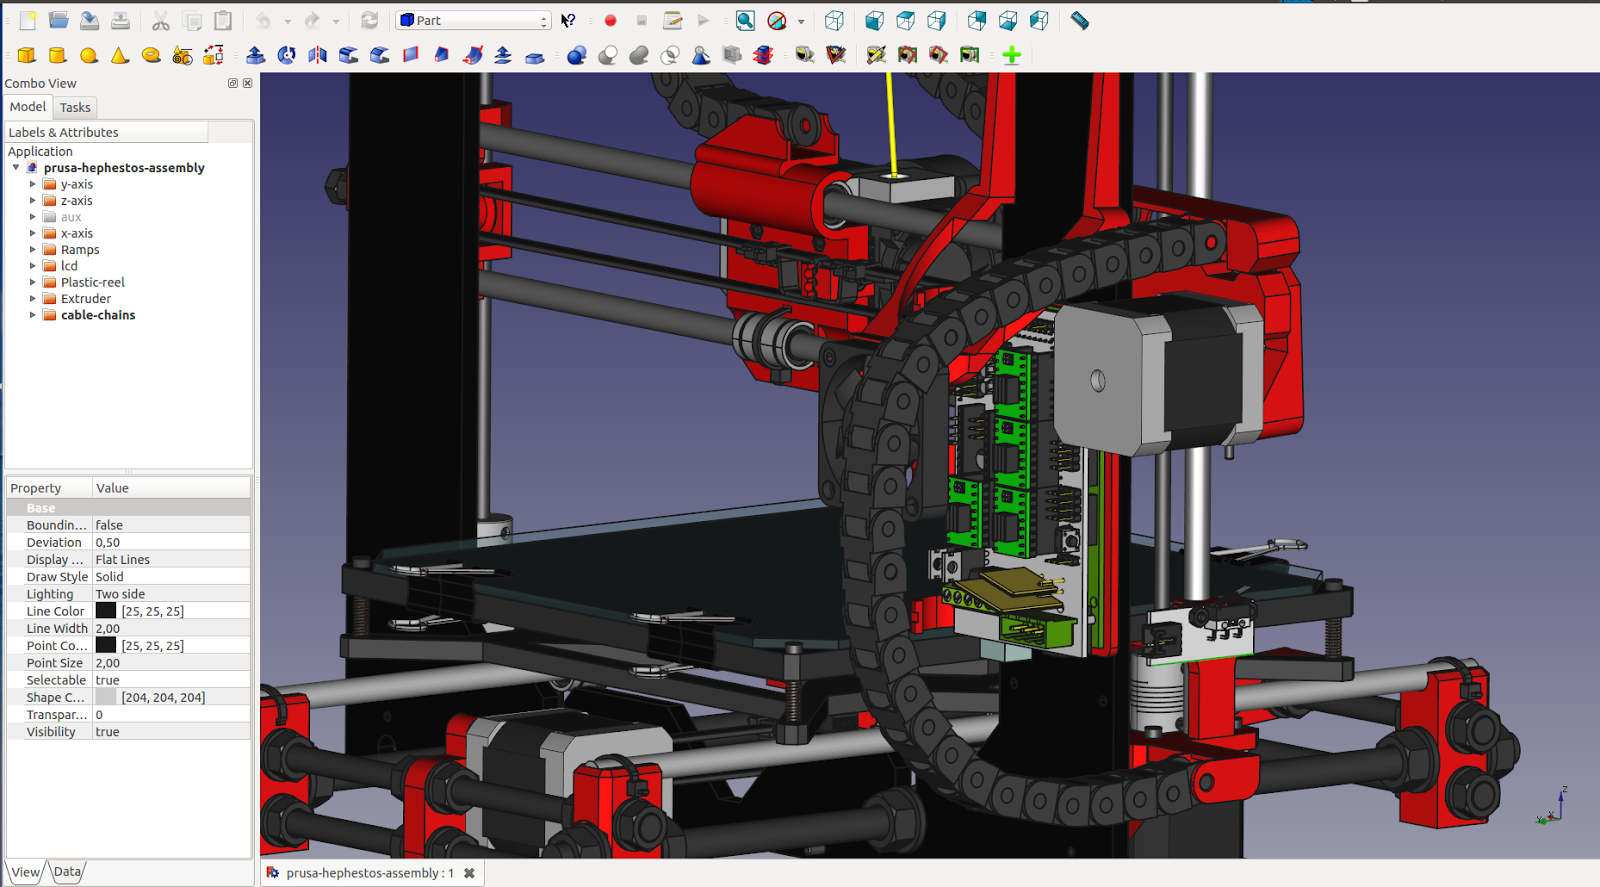 Melbourne 3D CAD under Linux - FreeCAD